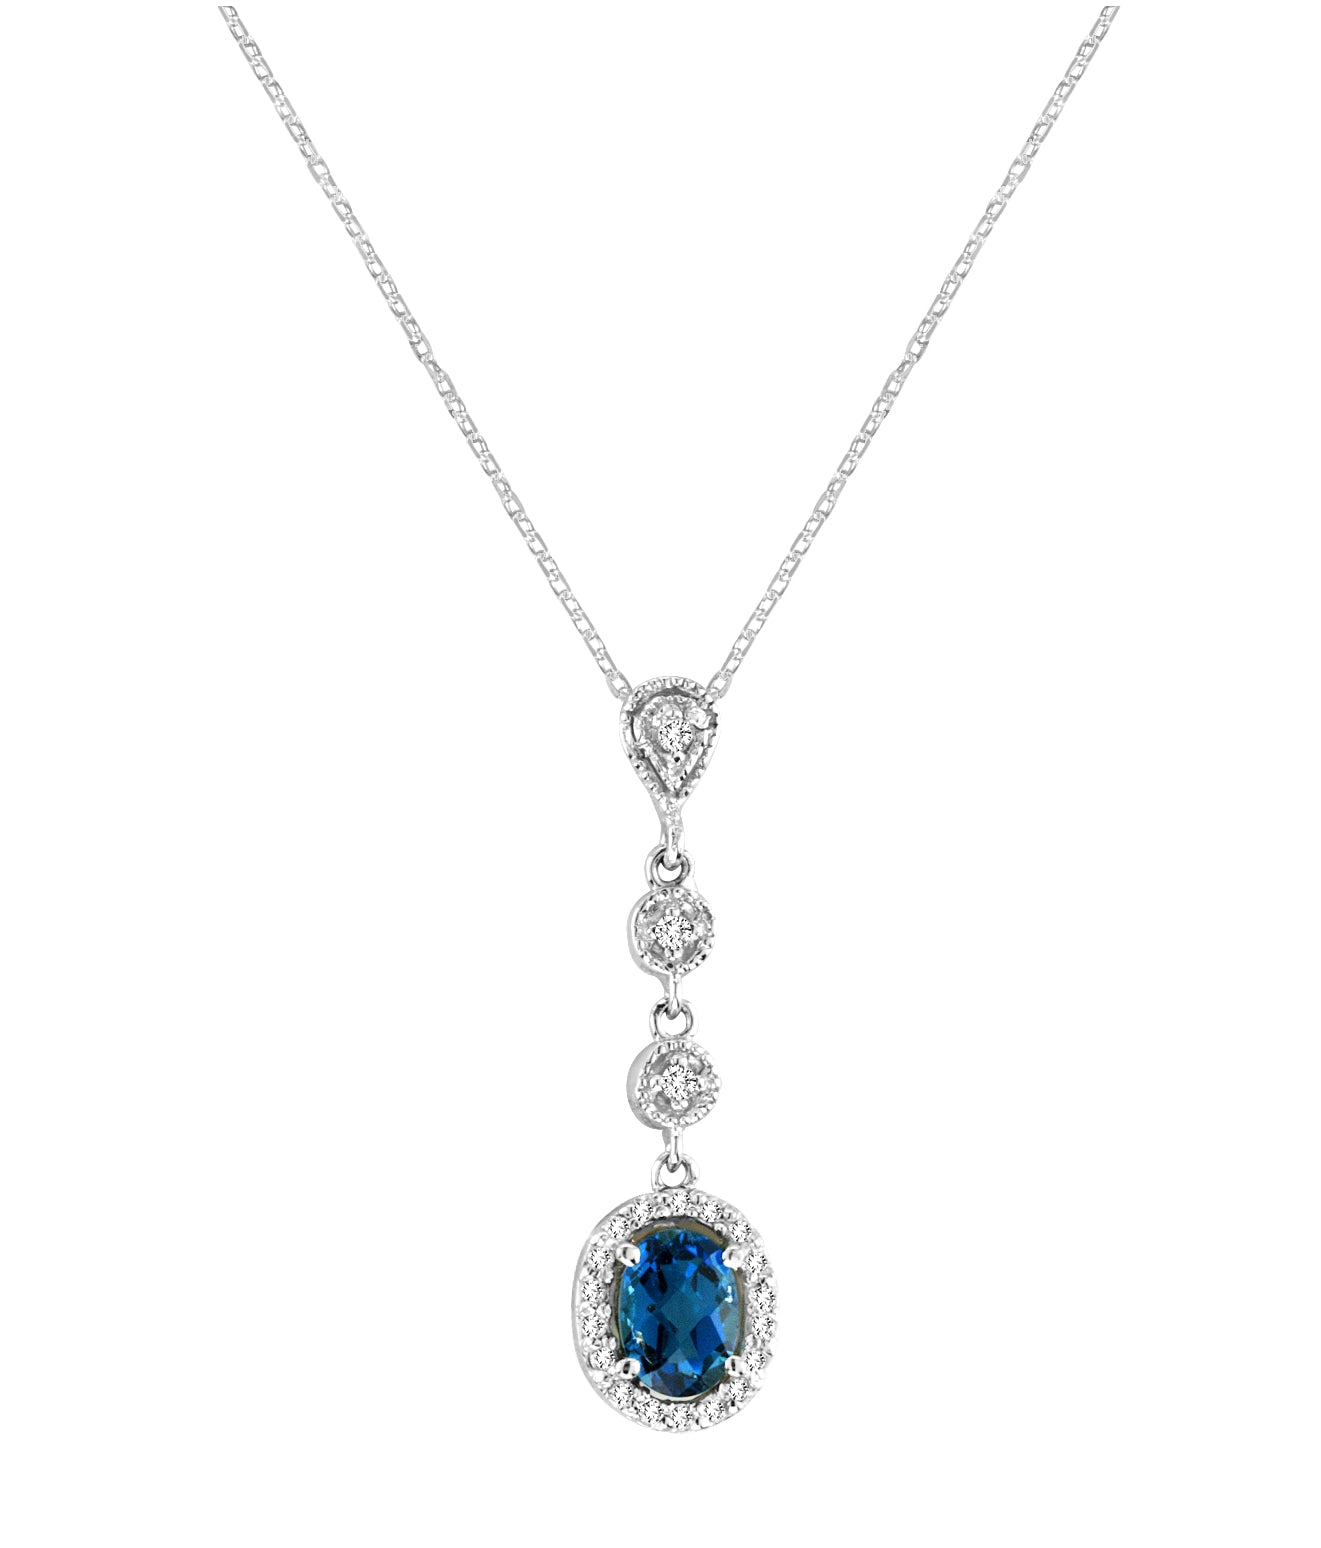 London Blue Topaz and Diamond Necklace